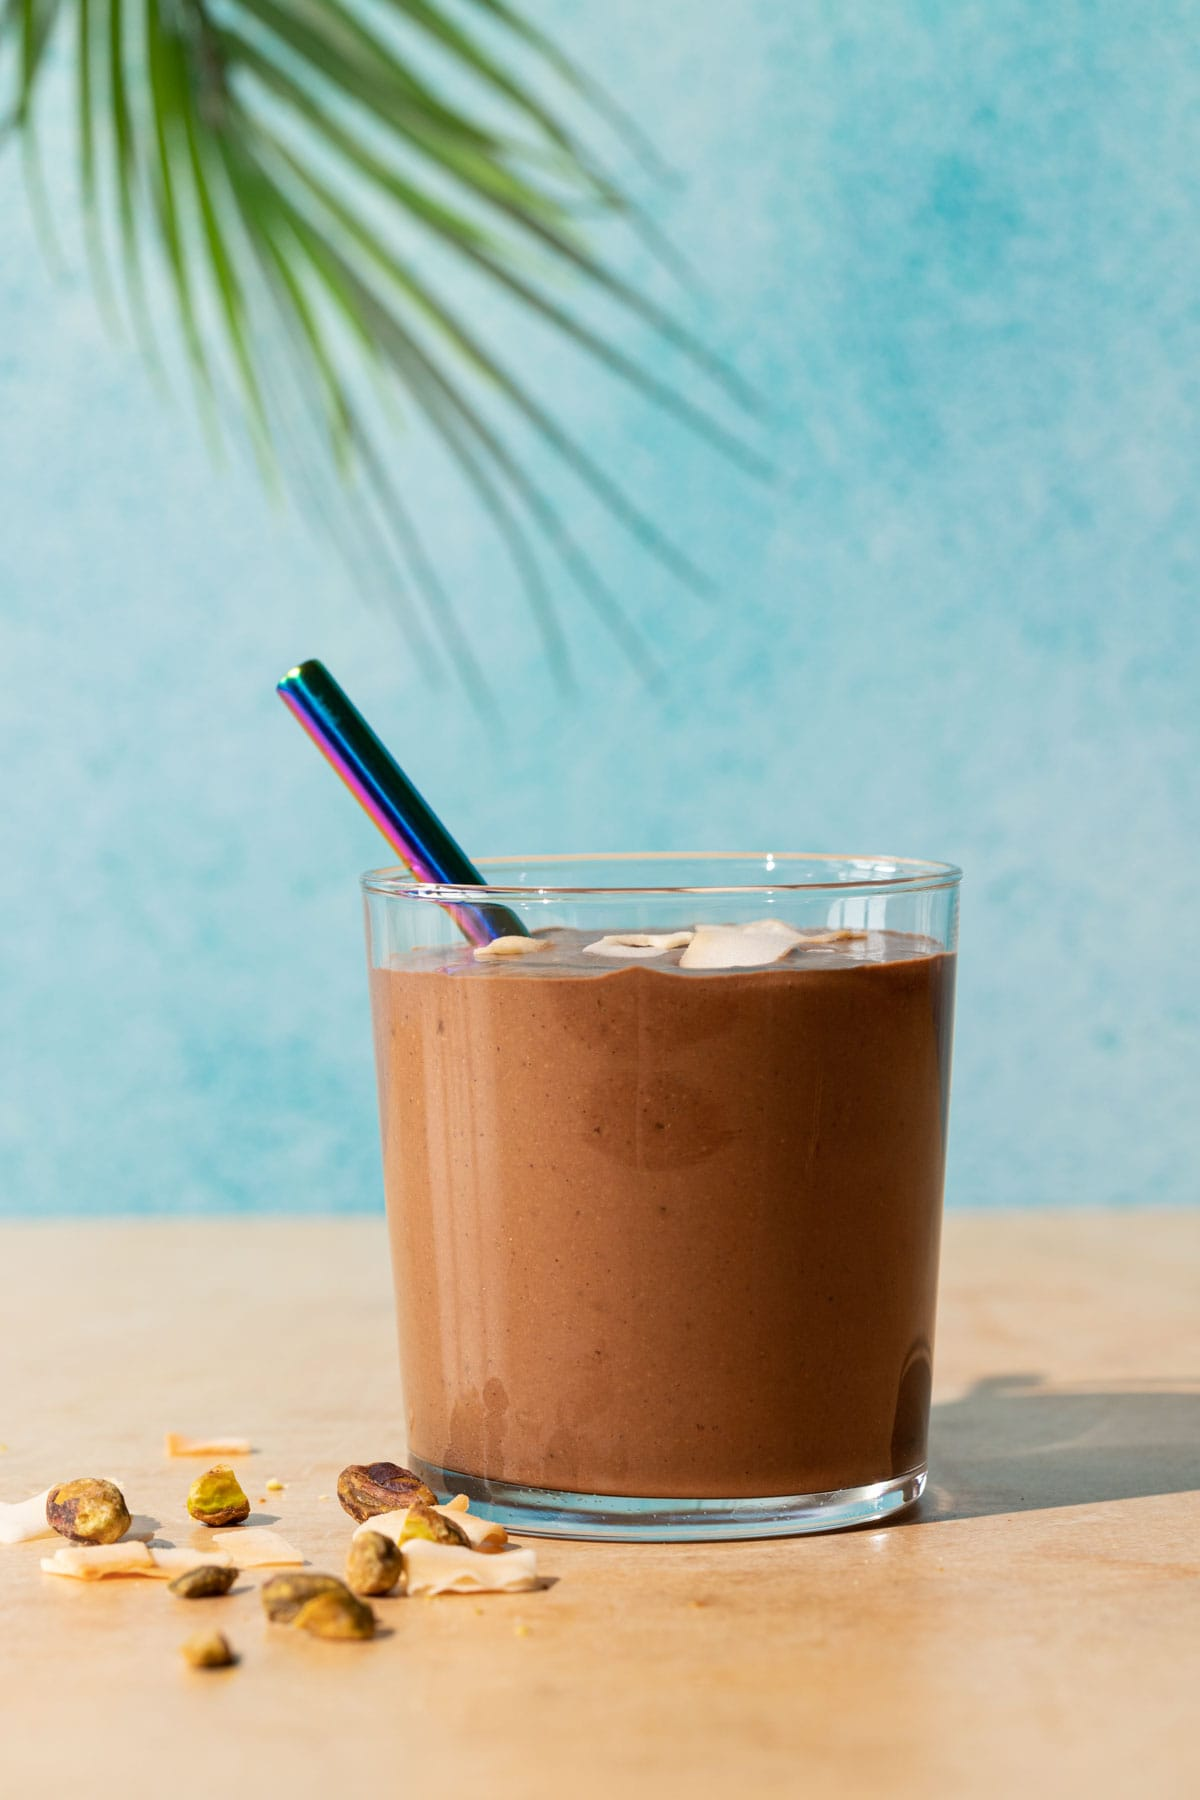 Chocolate Coconut smoothie with toasted coconut chips and pistachios on a yellow and blue background with palm leaf in background